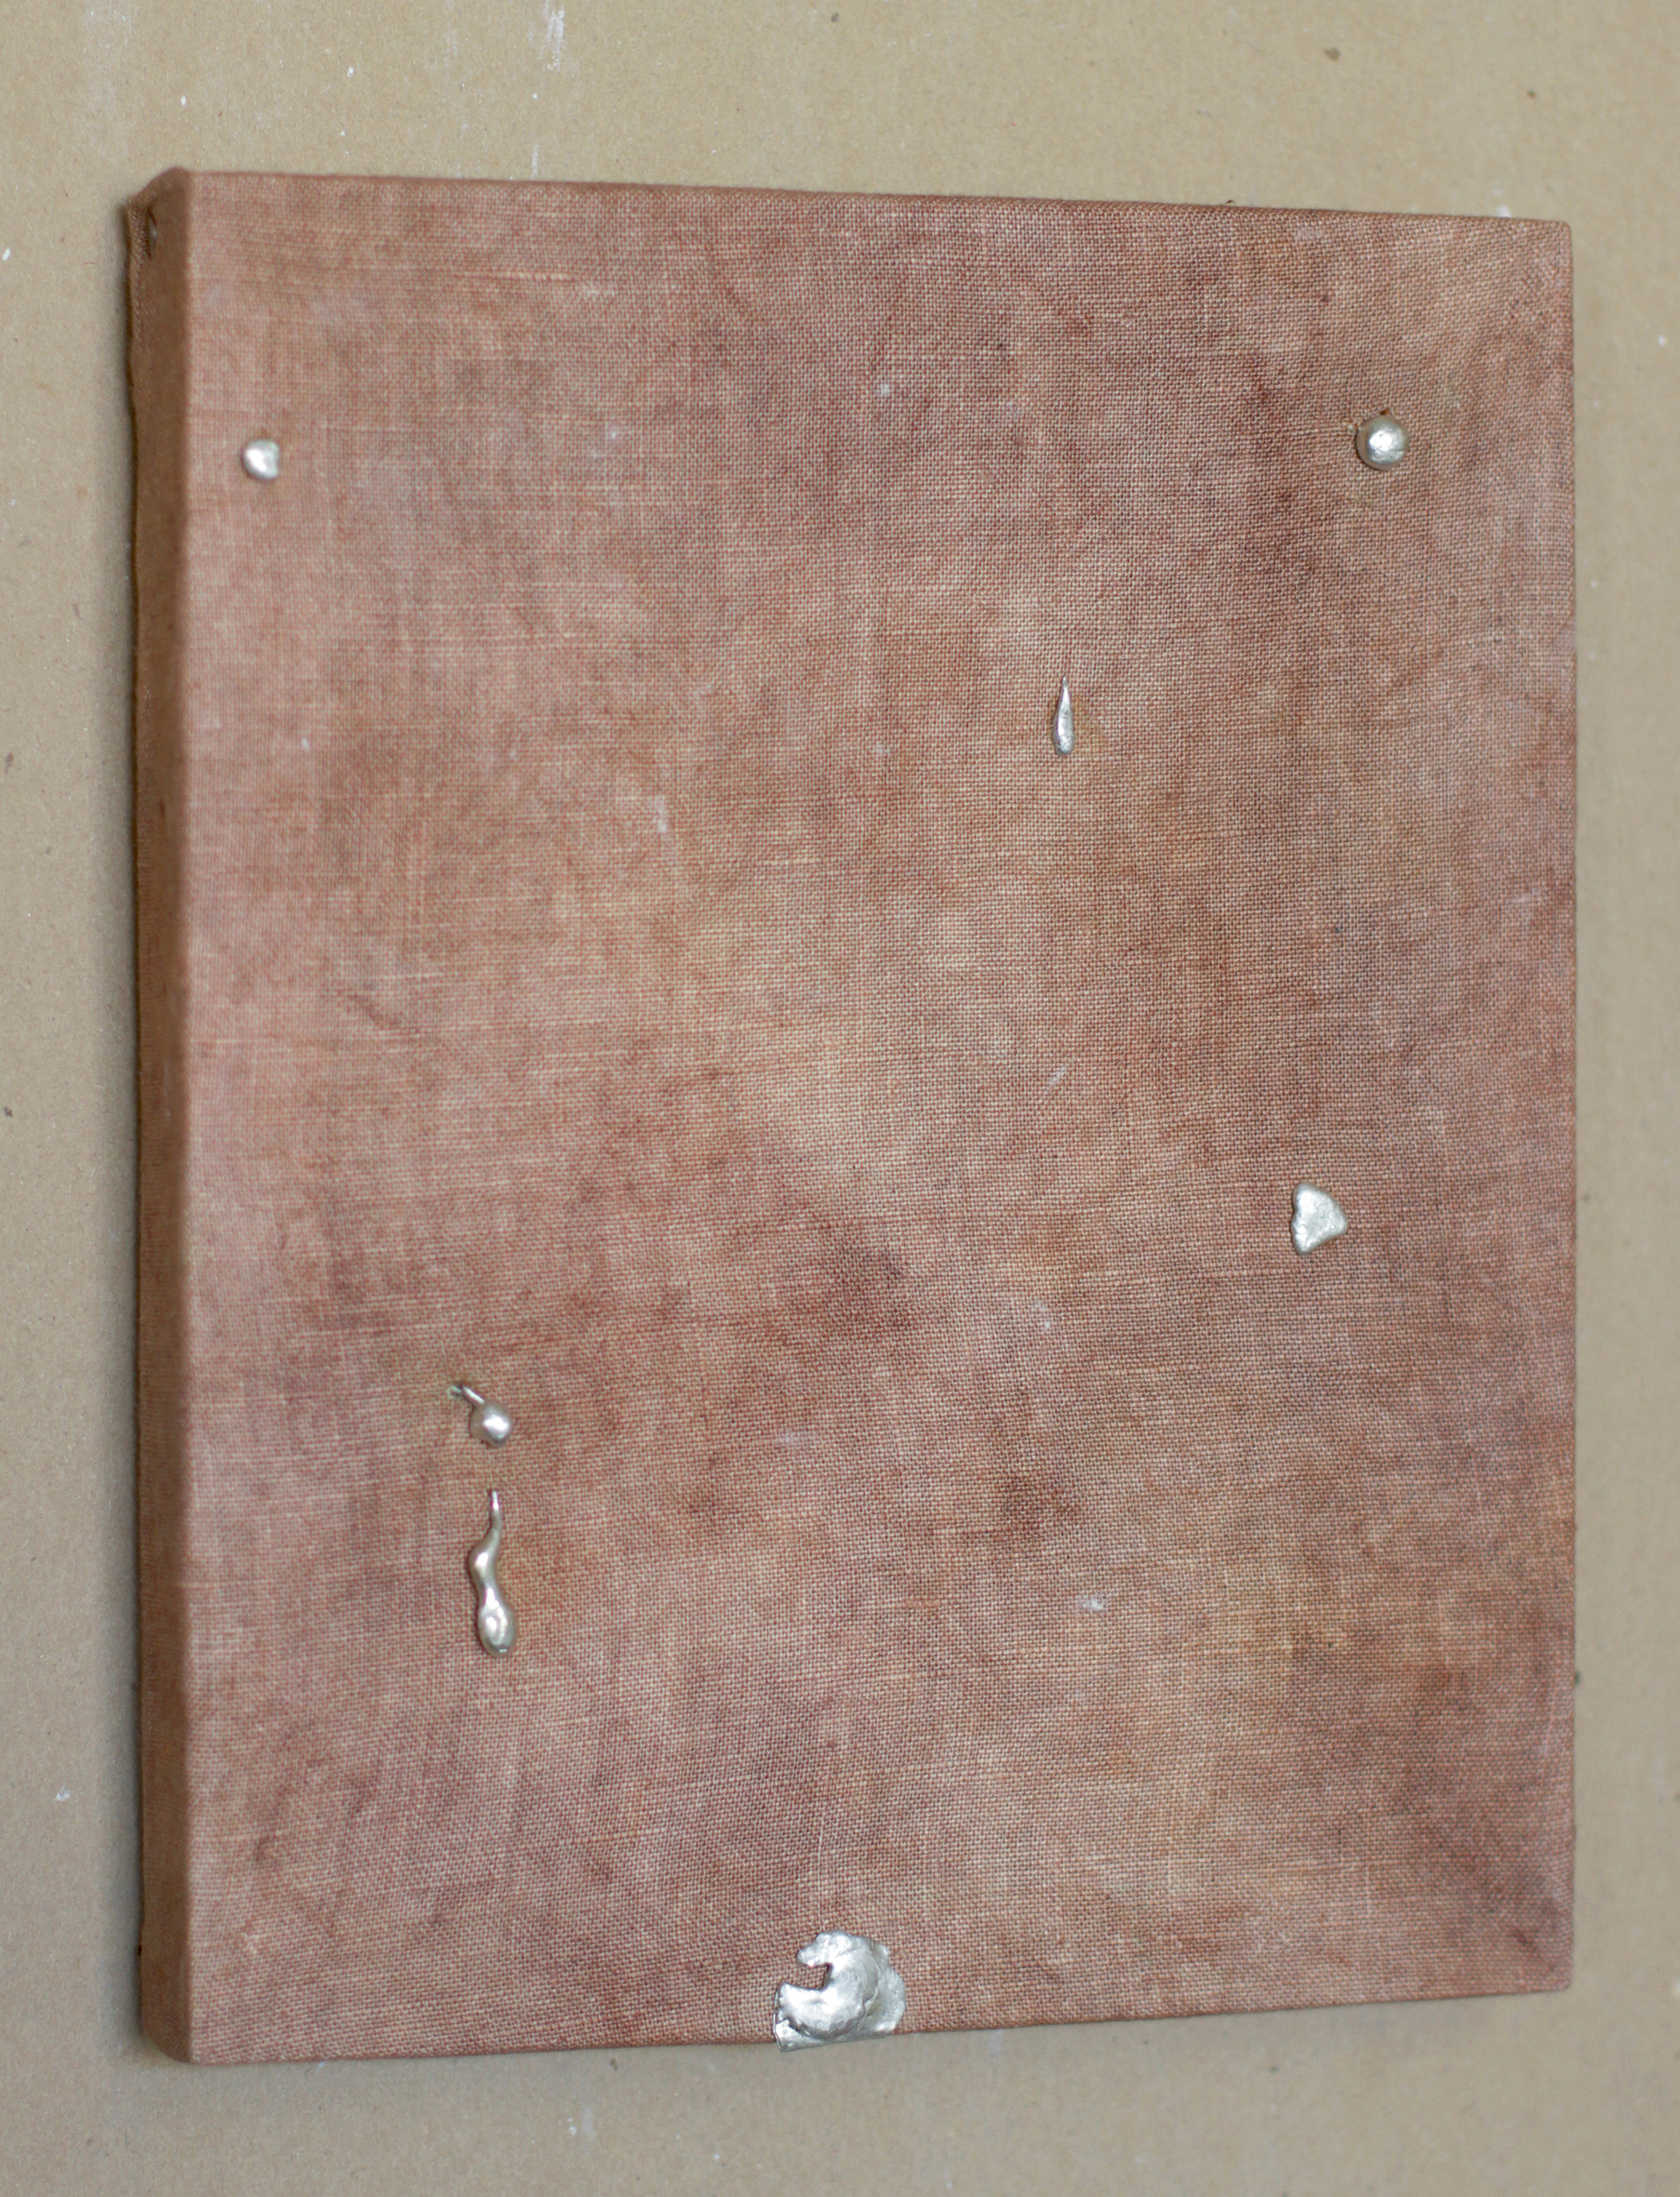 Rusty brown dyed linen stretched on canvas-stretcher with globs of silver metal adorned on top.